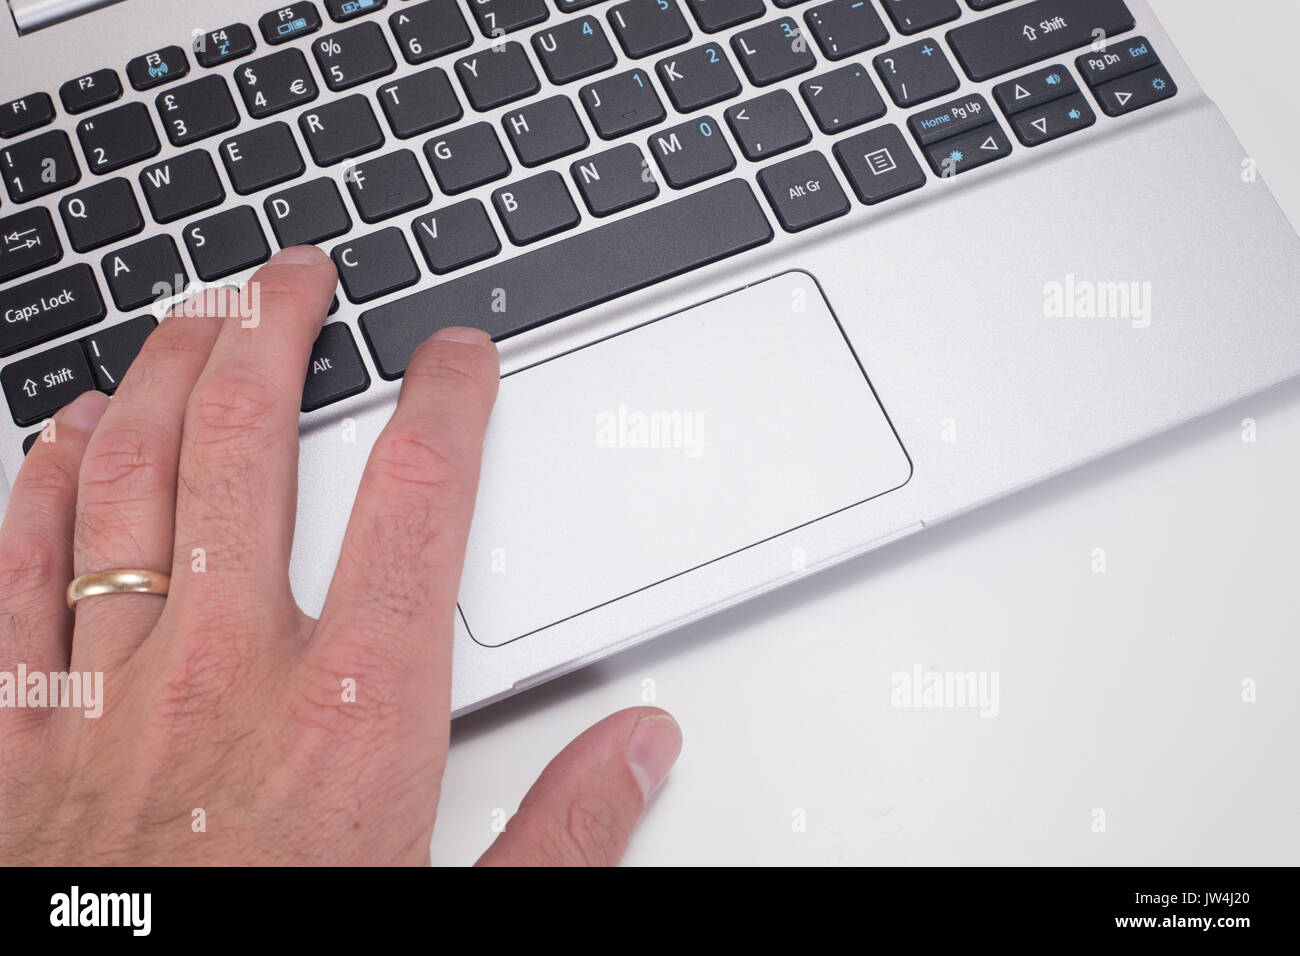 A mans hand with wedding ring using and pressing buttons on a computer laptop keyboard with white copy space. - Stock Image